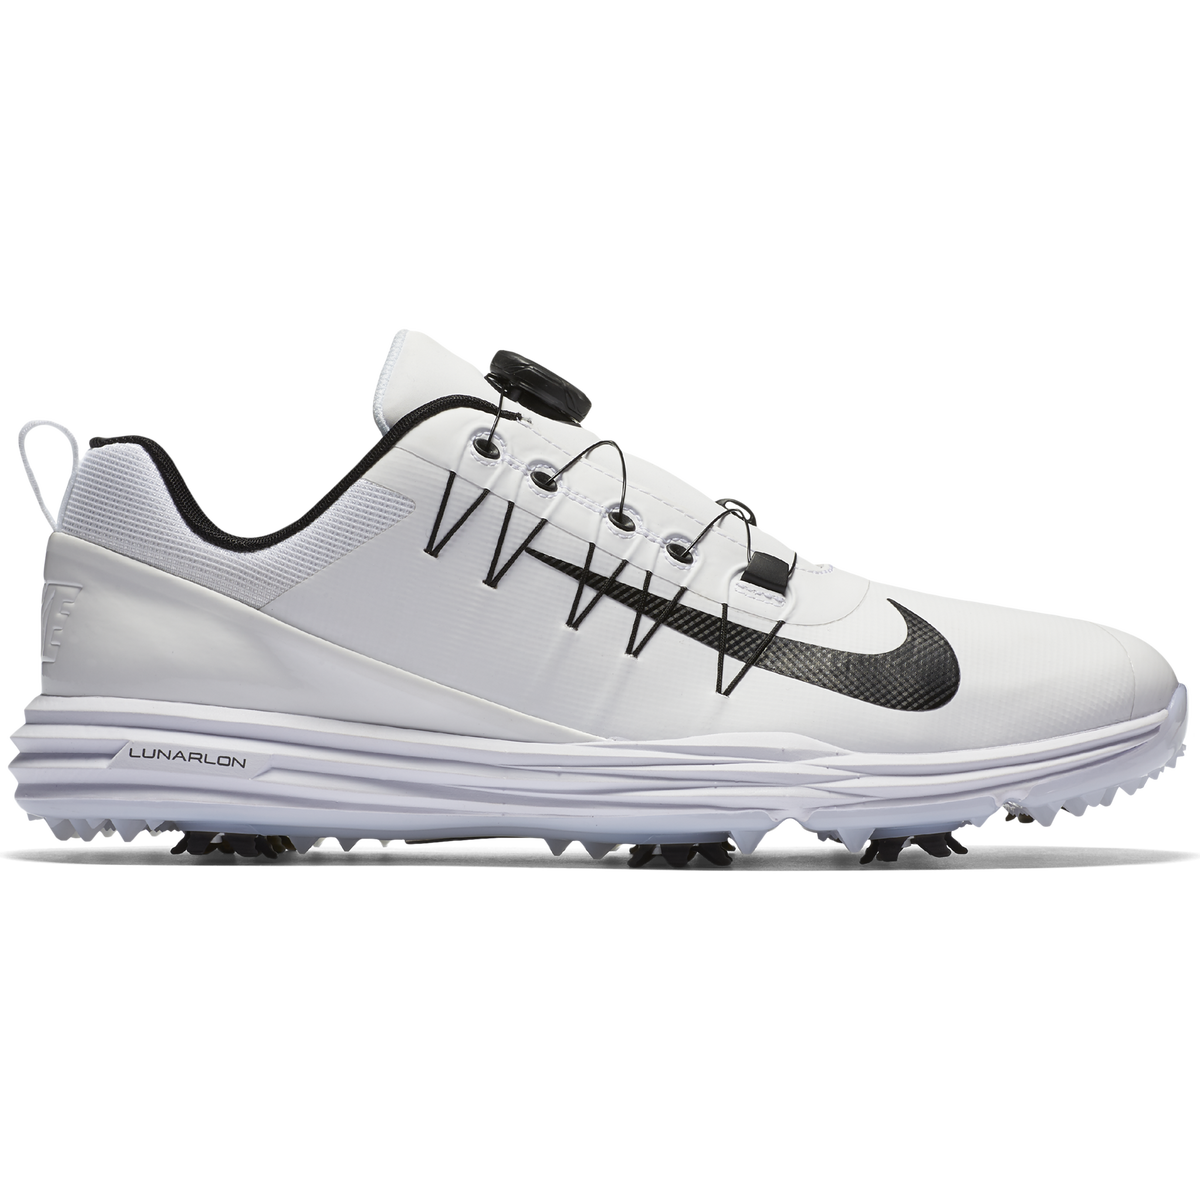 75b175ac7b Nike Lunar Command 2 Men's Golf Shoe - White/Black | PGA TOUR Superstore